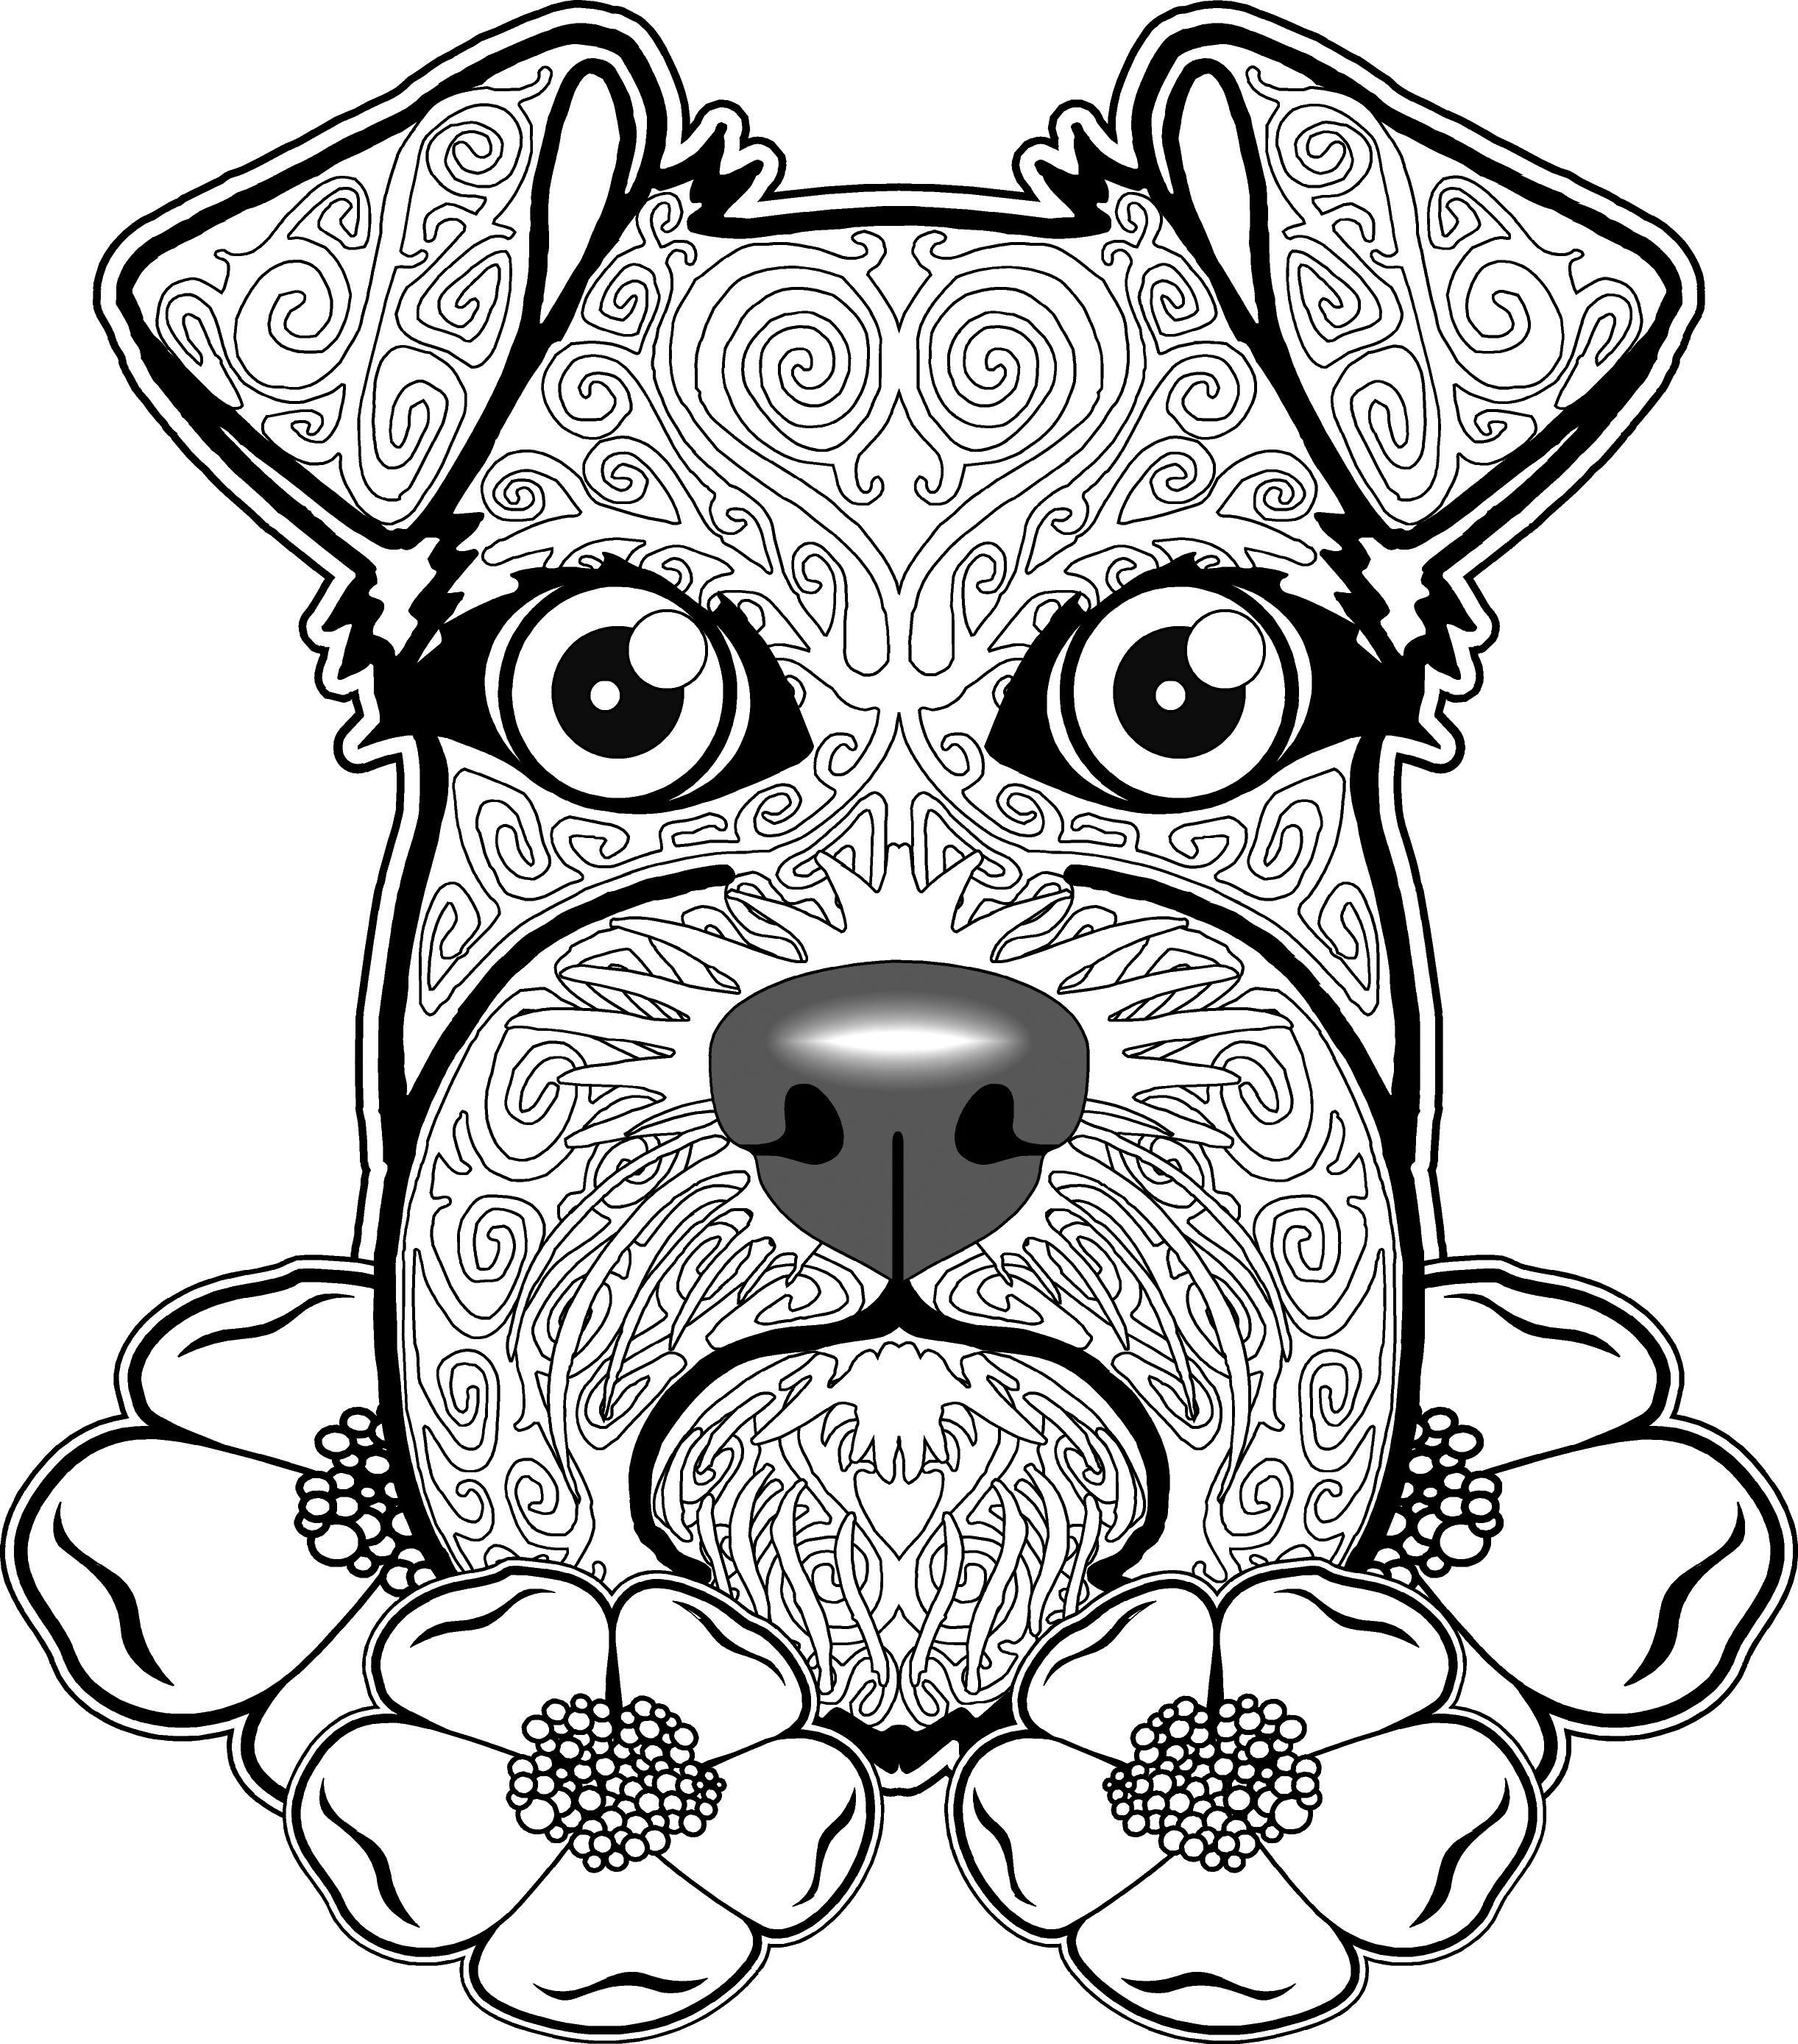 2443x2778 Dog Coloring Page, Dog Coloring Pages, Free Coloring Page, Free